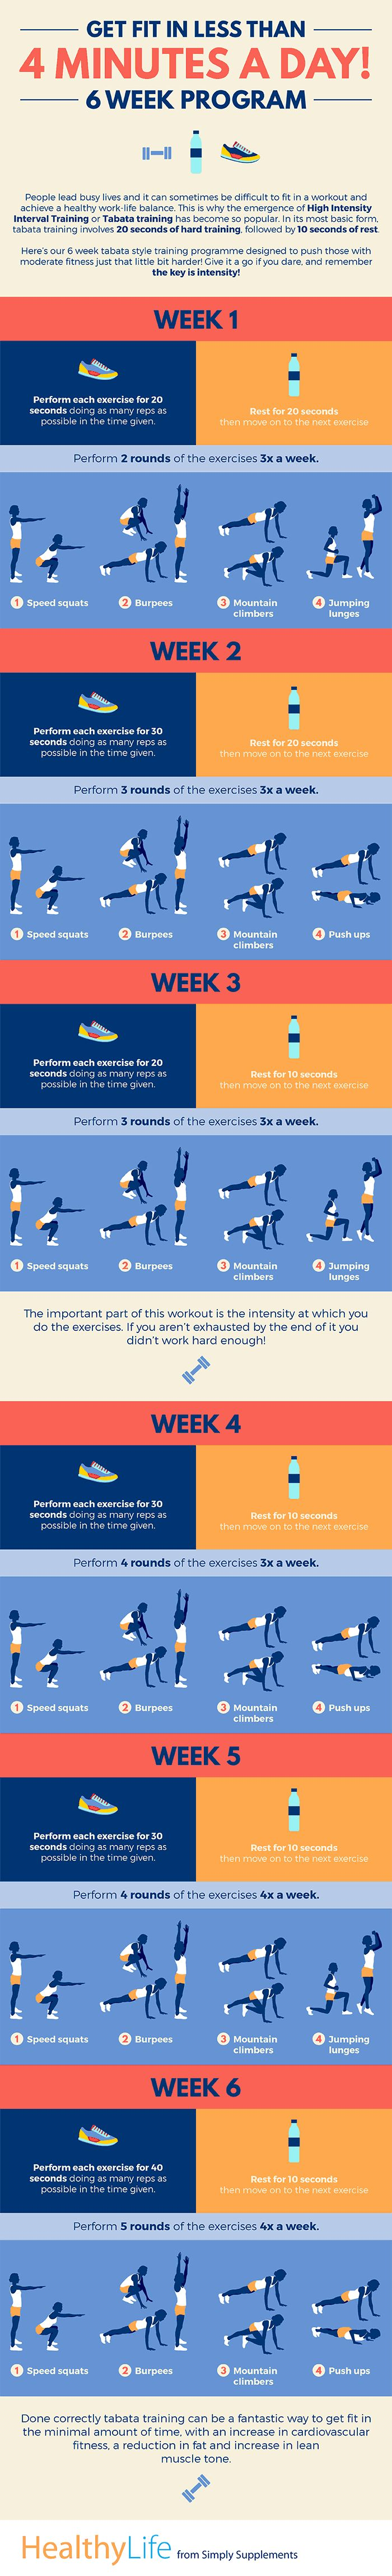 HIIT workout at home – Here is our 6 week HIIT workout for beginners which is designed to push those with moderate fitness levels just that little bit harder.   From HealthyLife by Simply Supplements